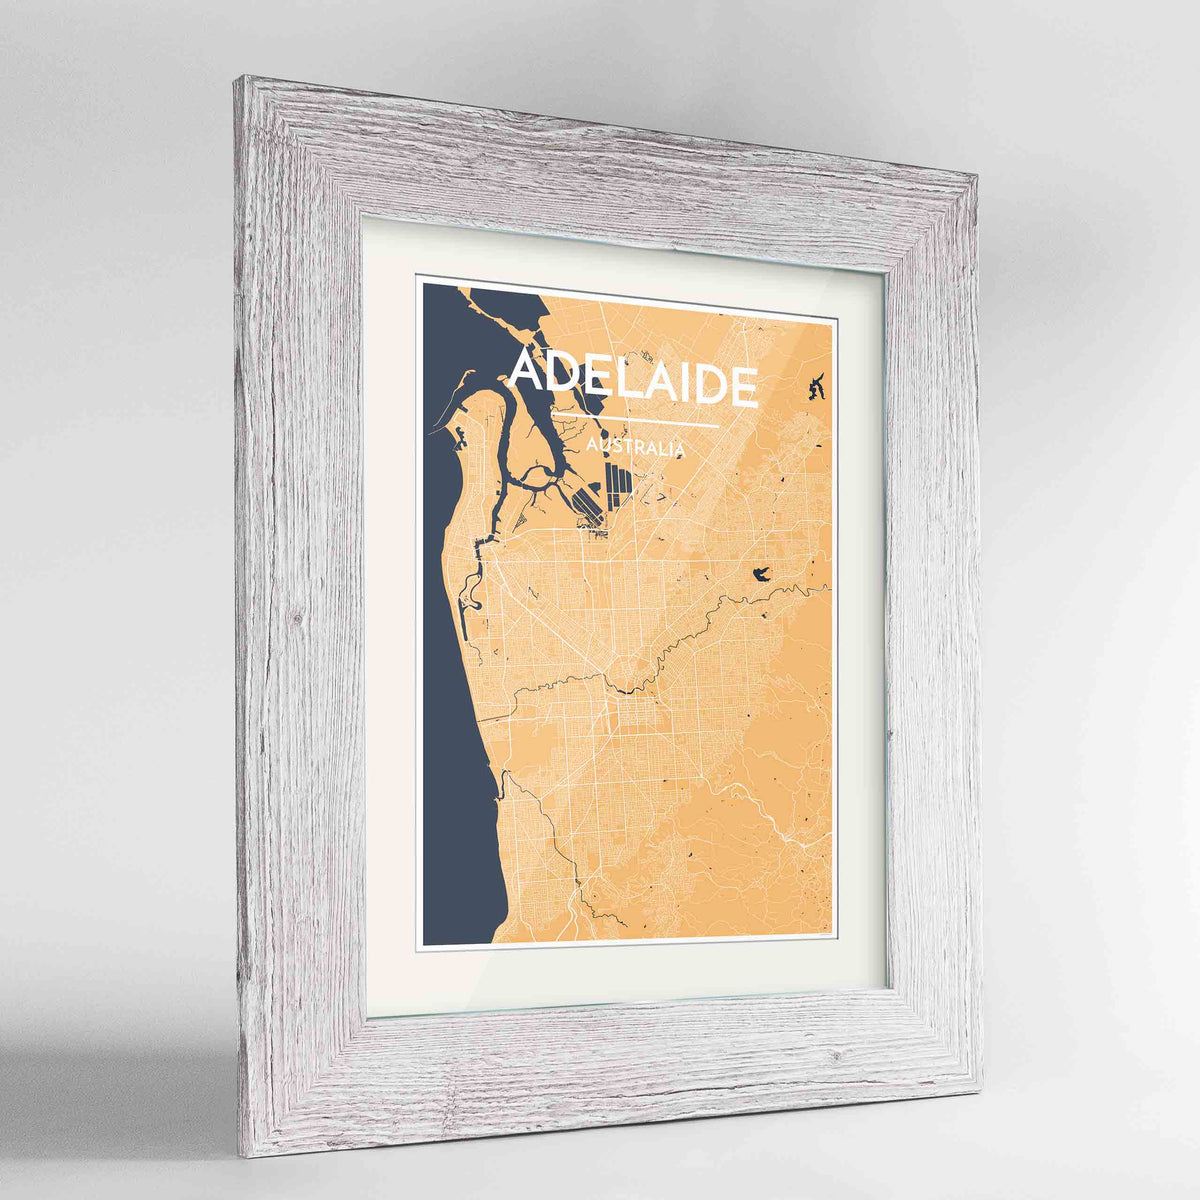 "Framed Adelaide Map Art Print 24x36"" Western White frame Point Two Design Group"